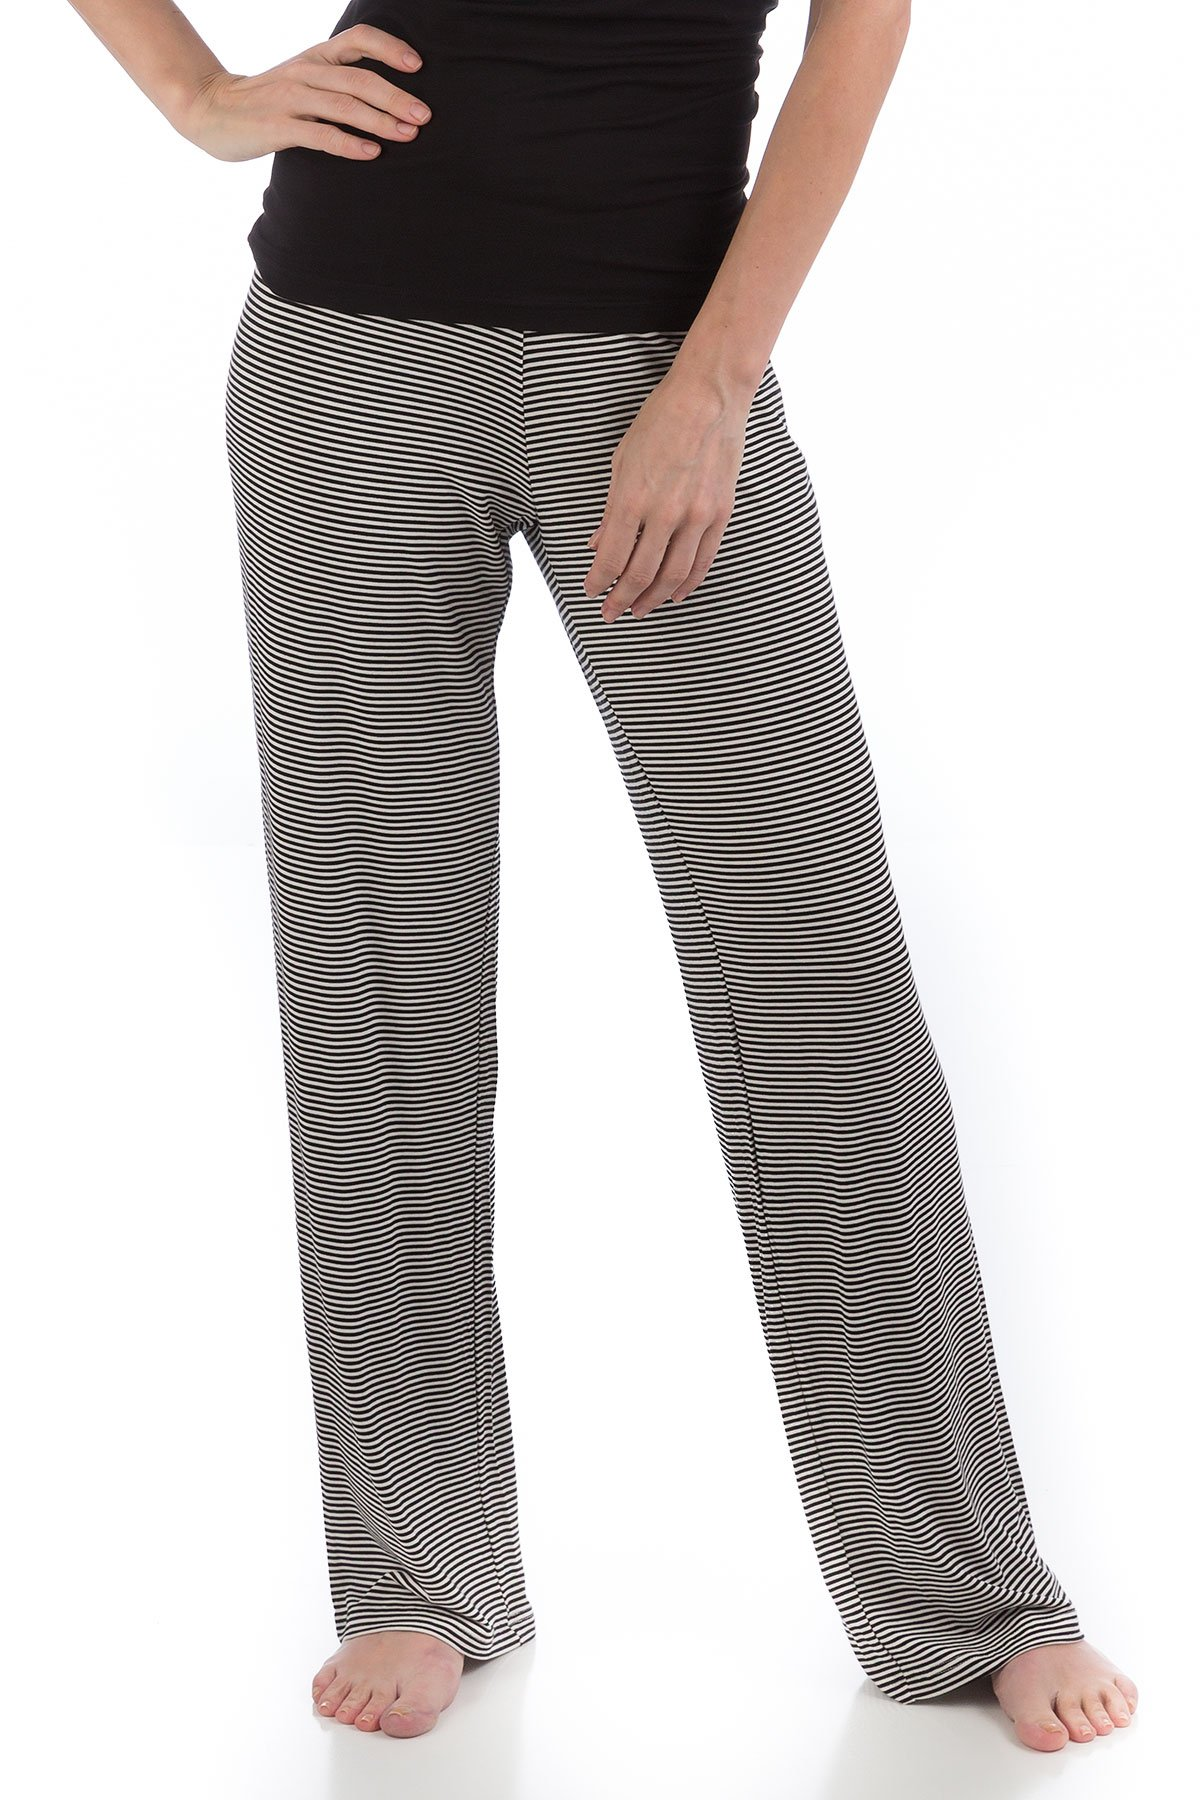 LLP212 Medium Black Micro Stripe BambooDreams Lily Lounge Pants.